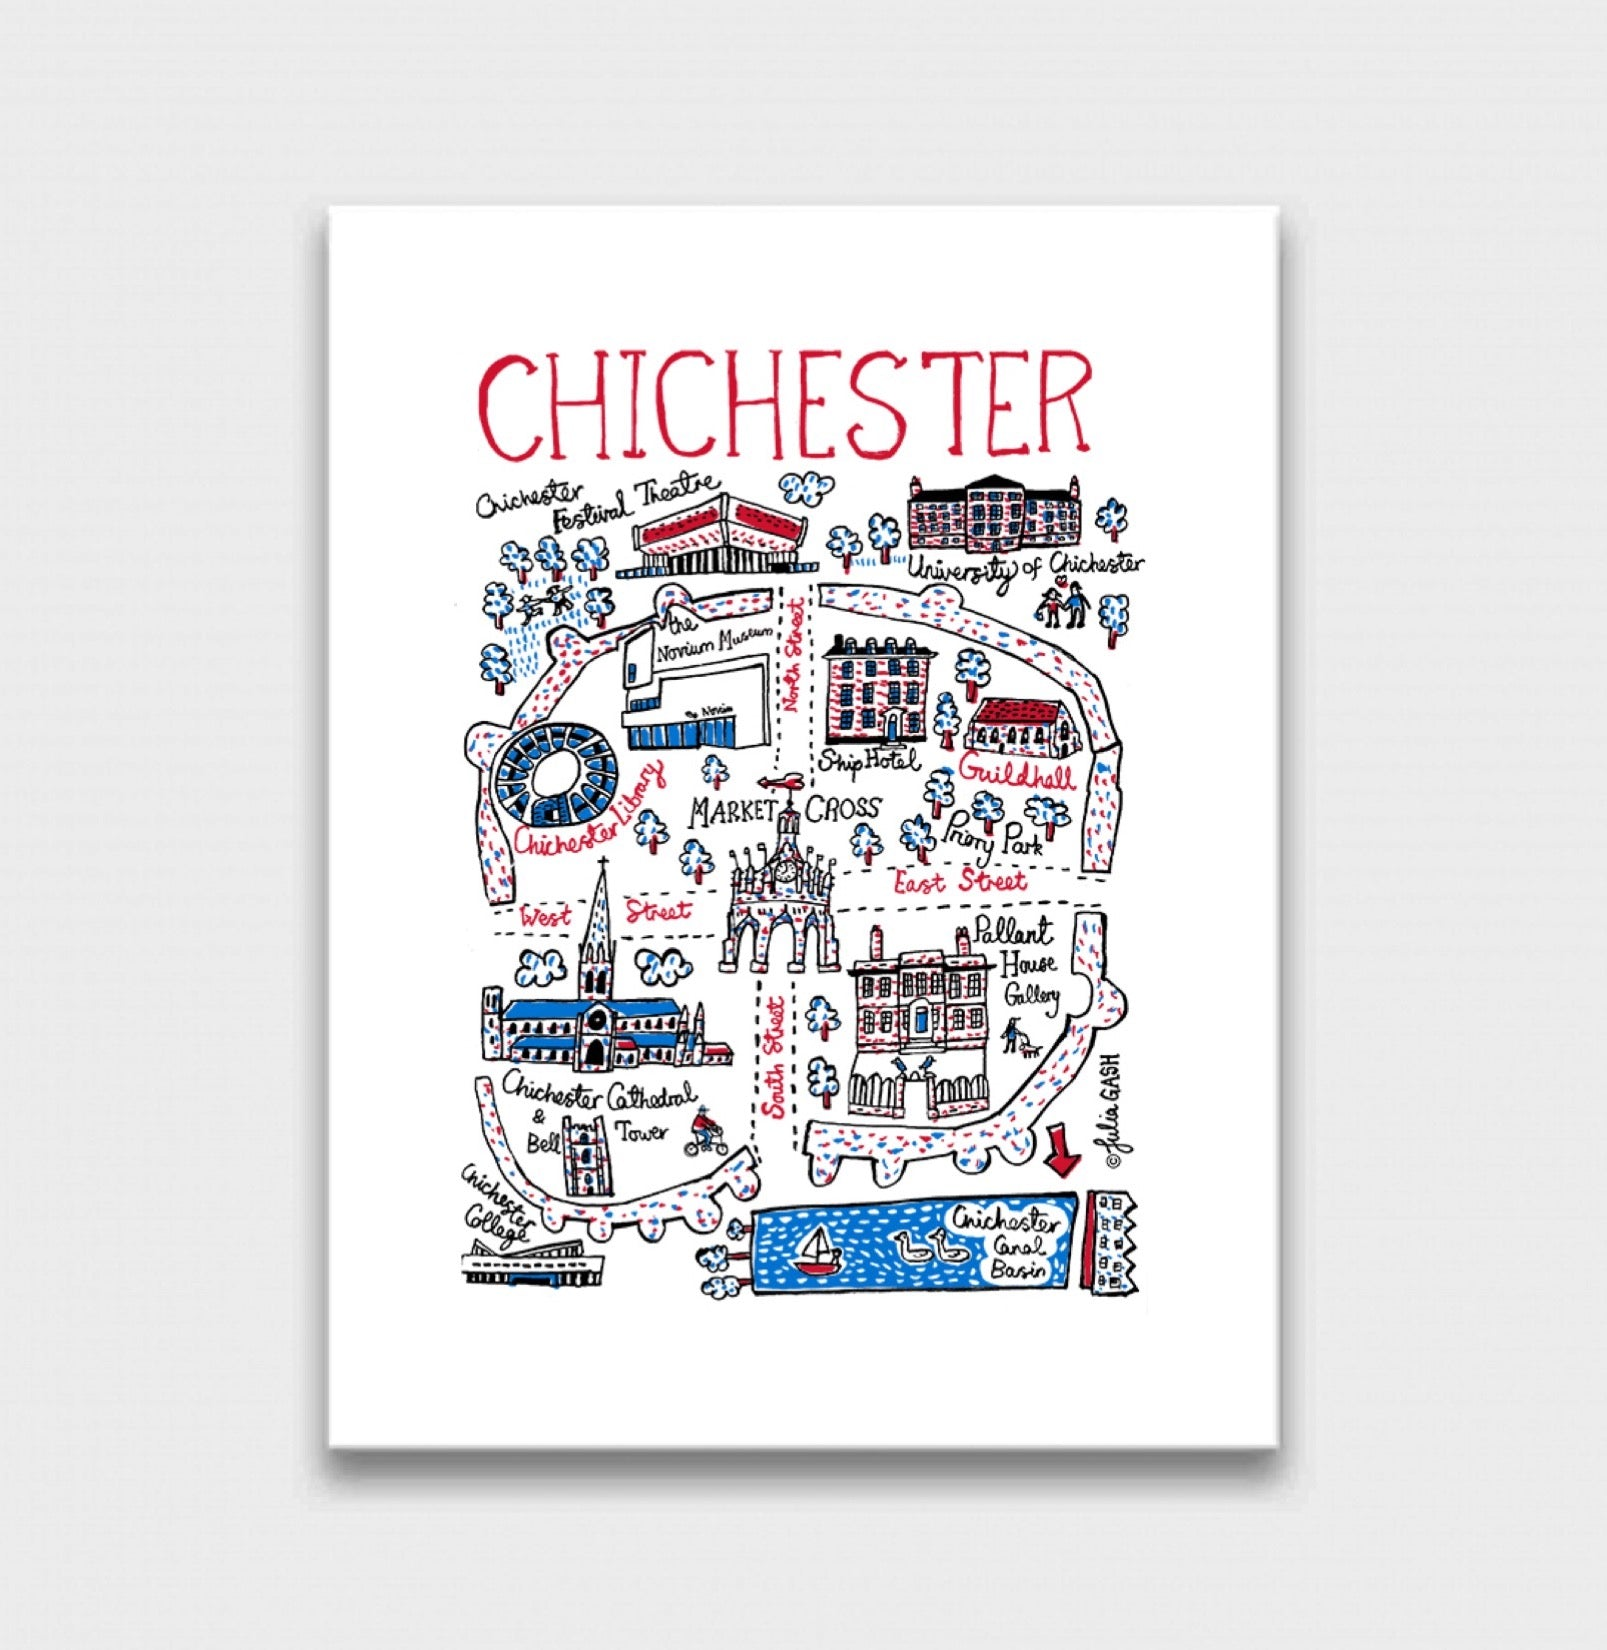 Chichester Art Print - Julia Gash